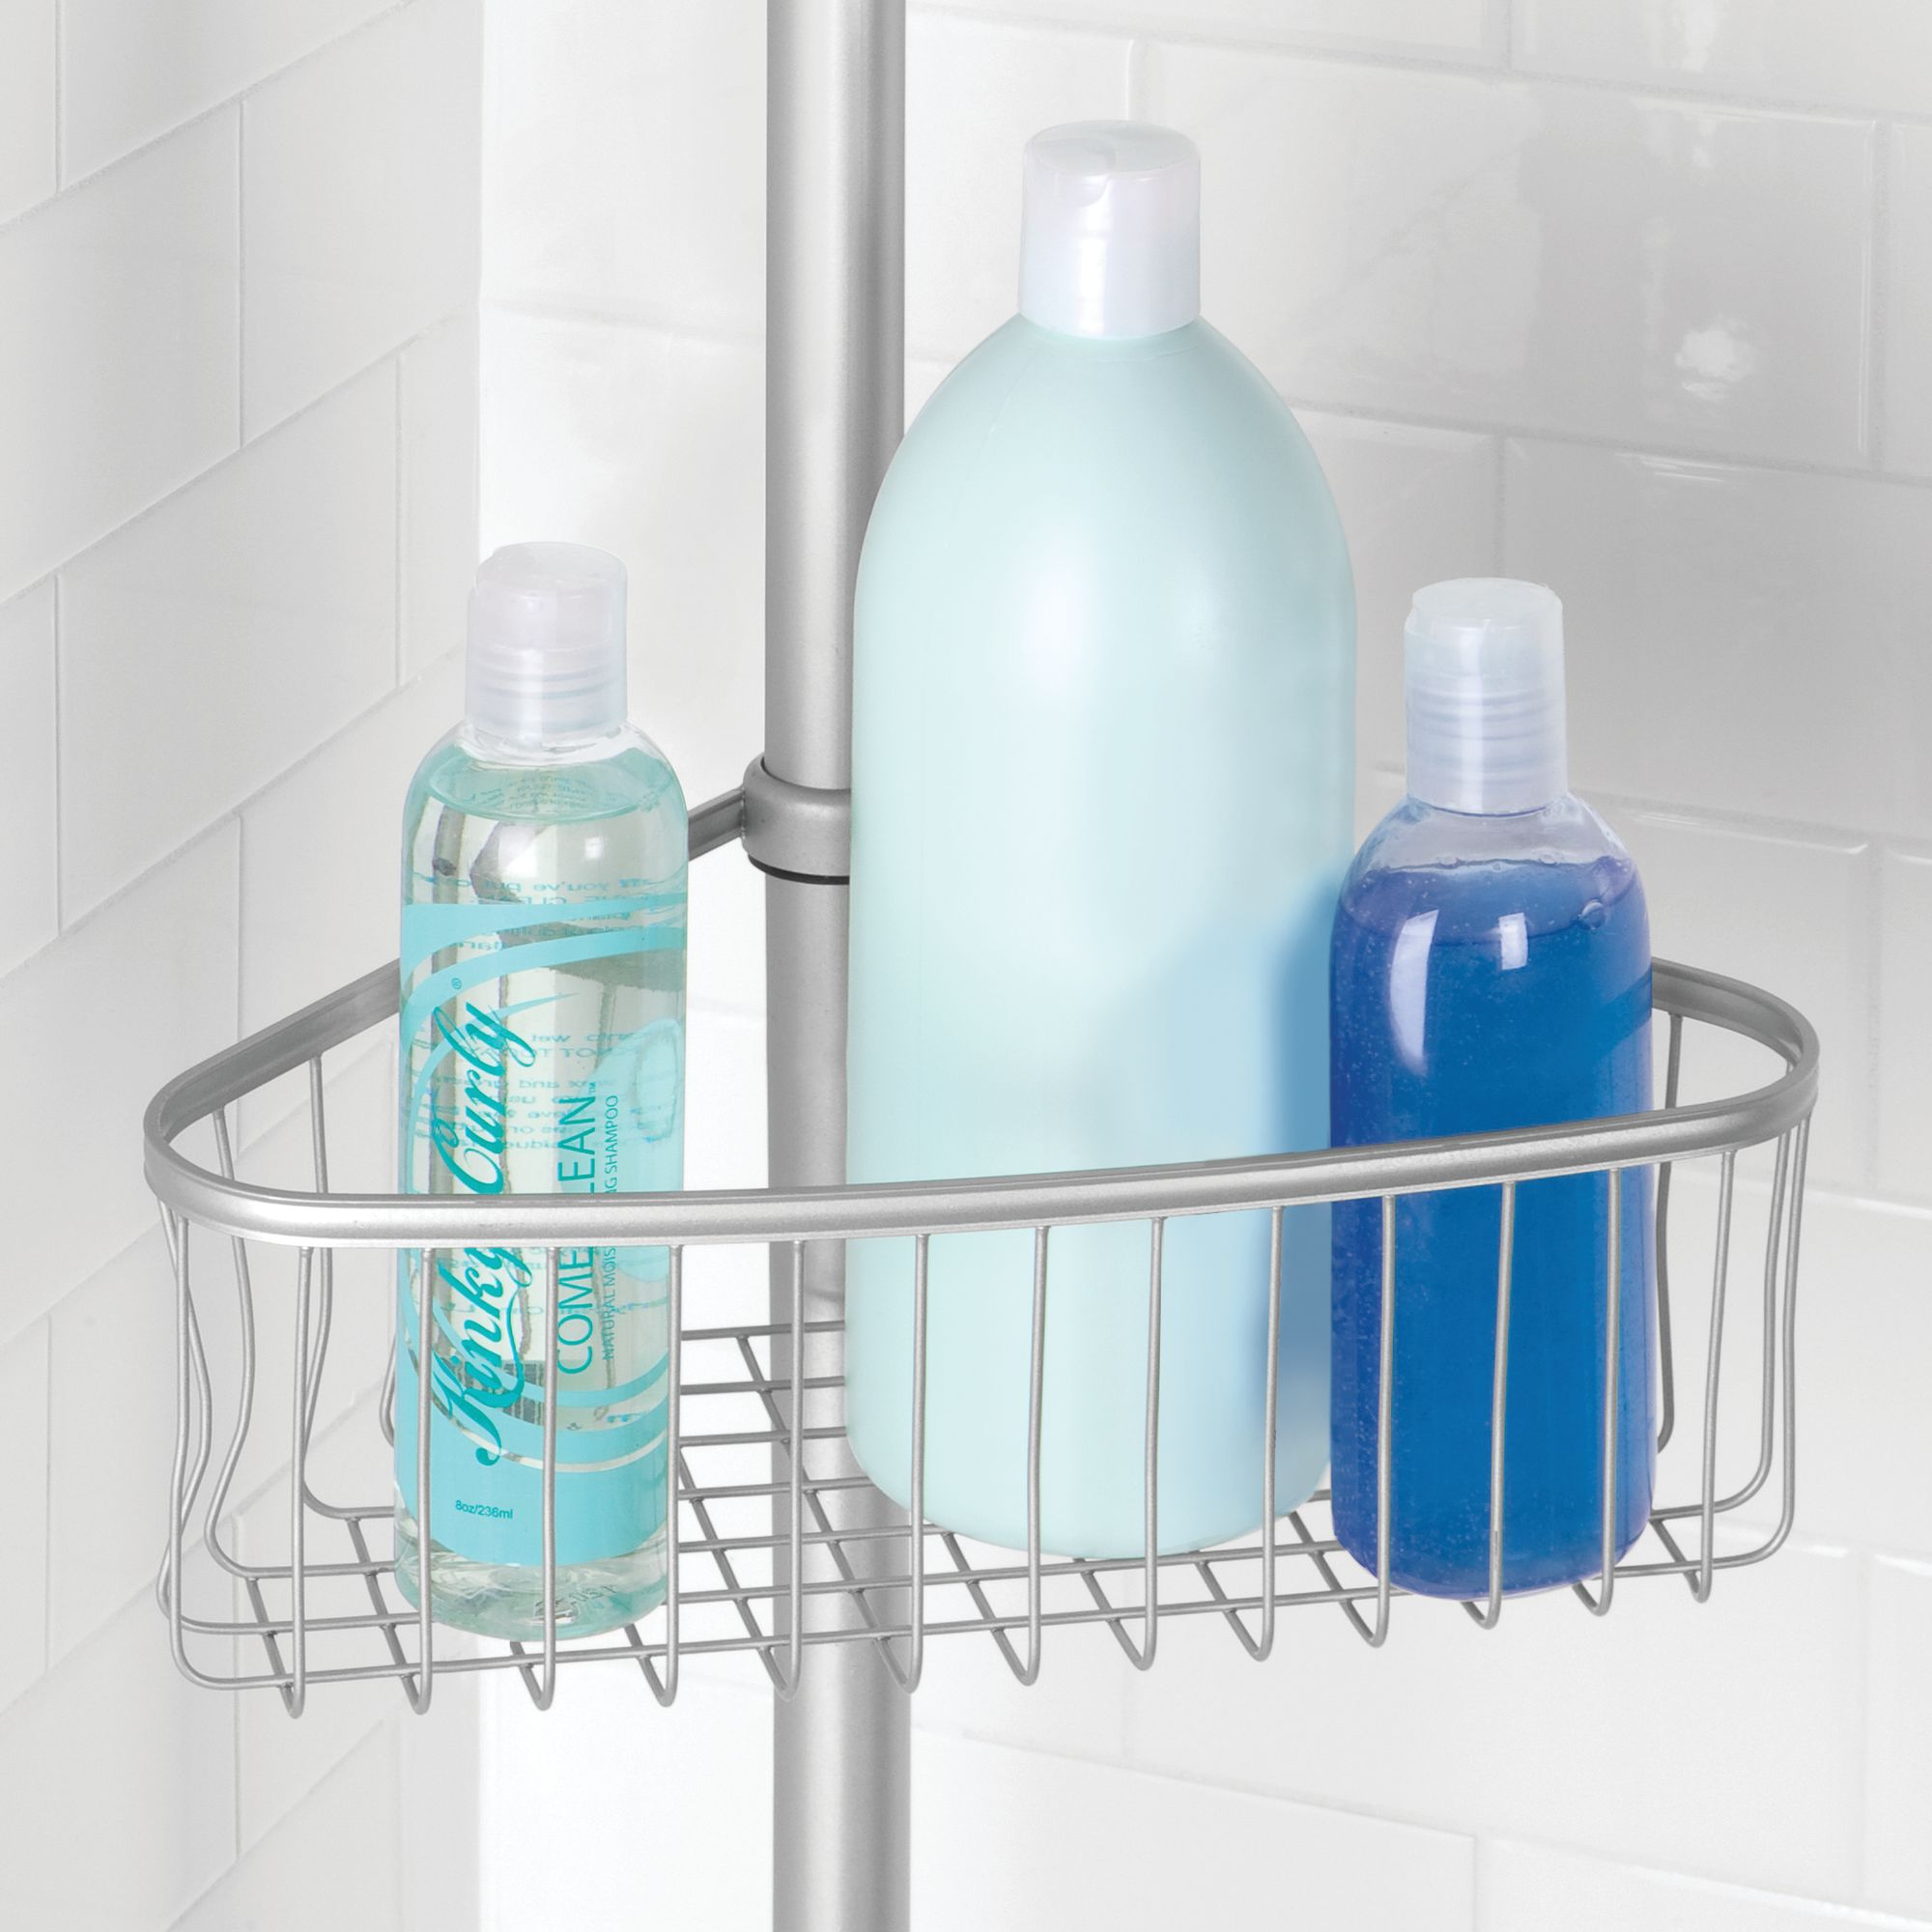 InterDesign York Tension Shower Caddy - Walmart.com